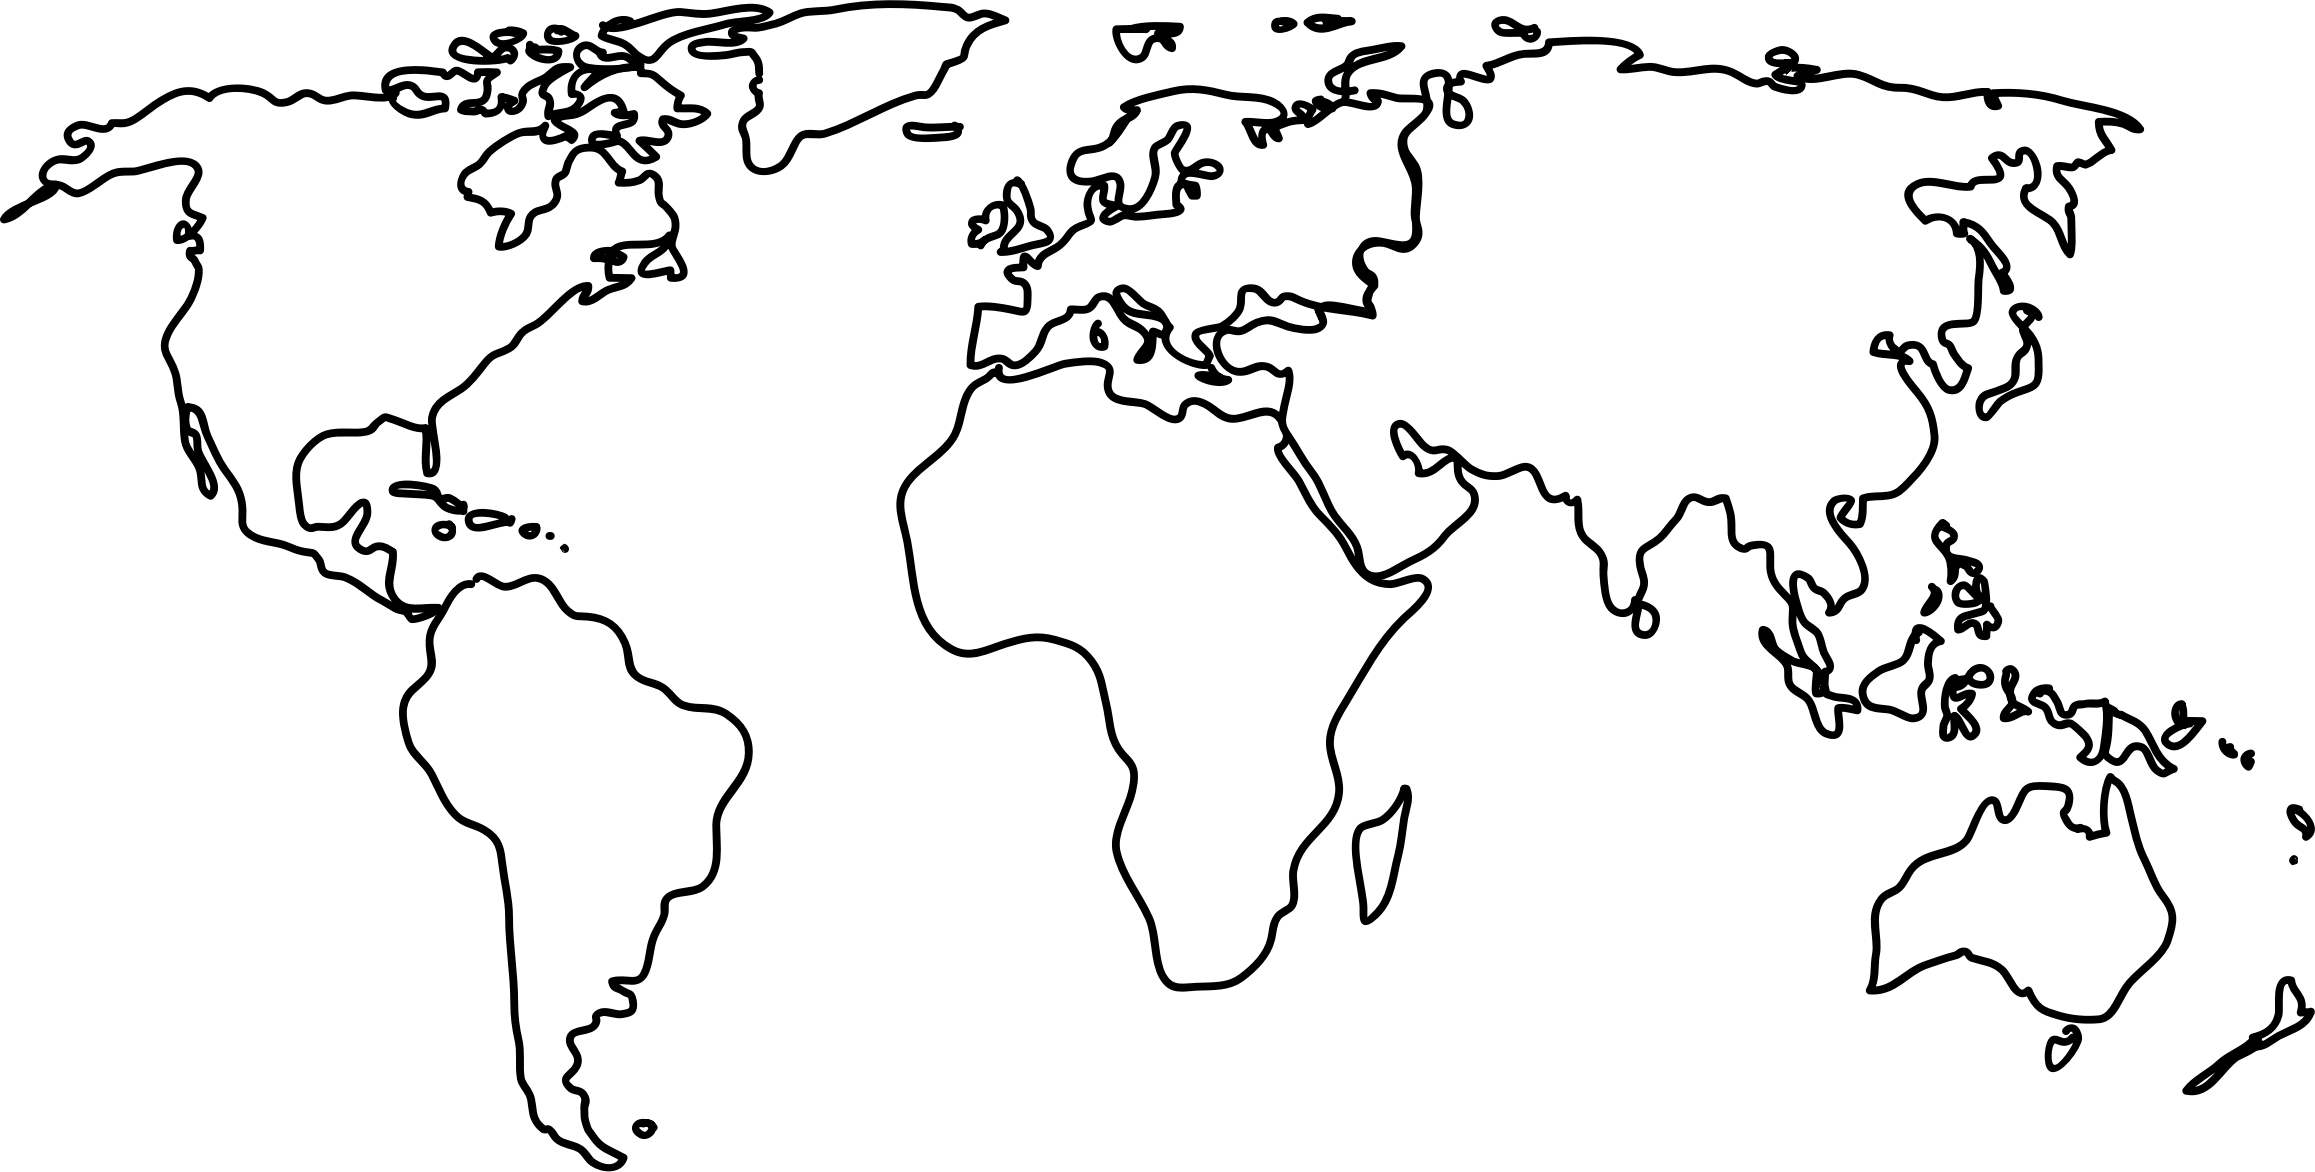 World map clipart uship svg royalty free World map clip art black and white - ClipartFest svg royalty free